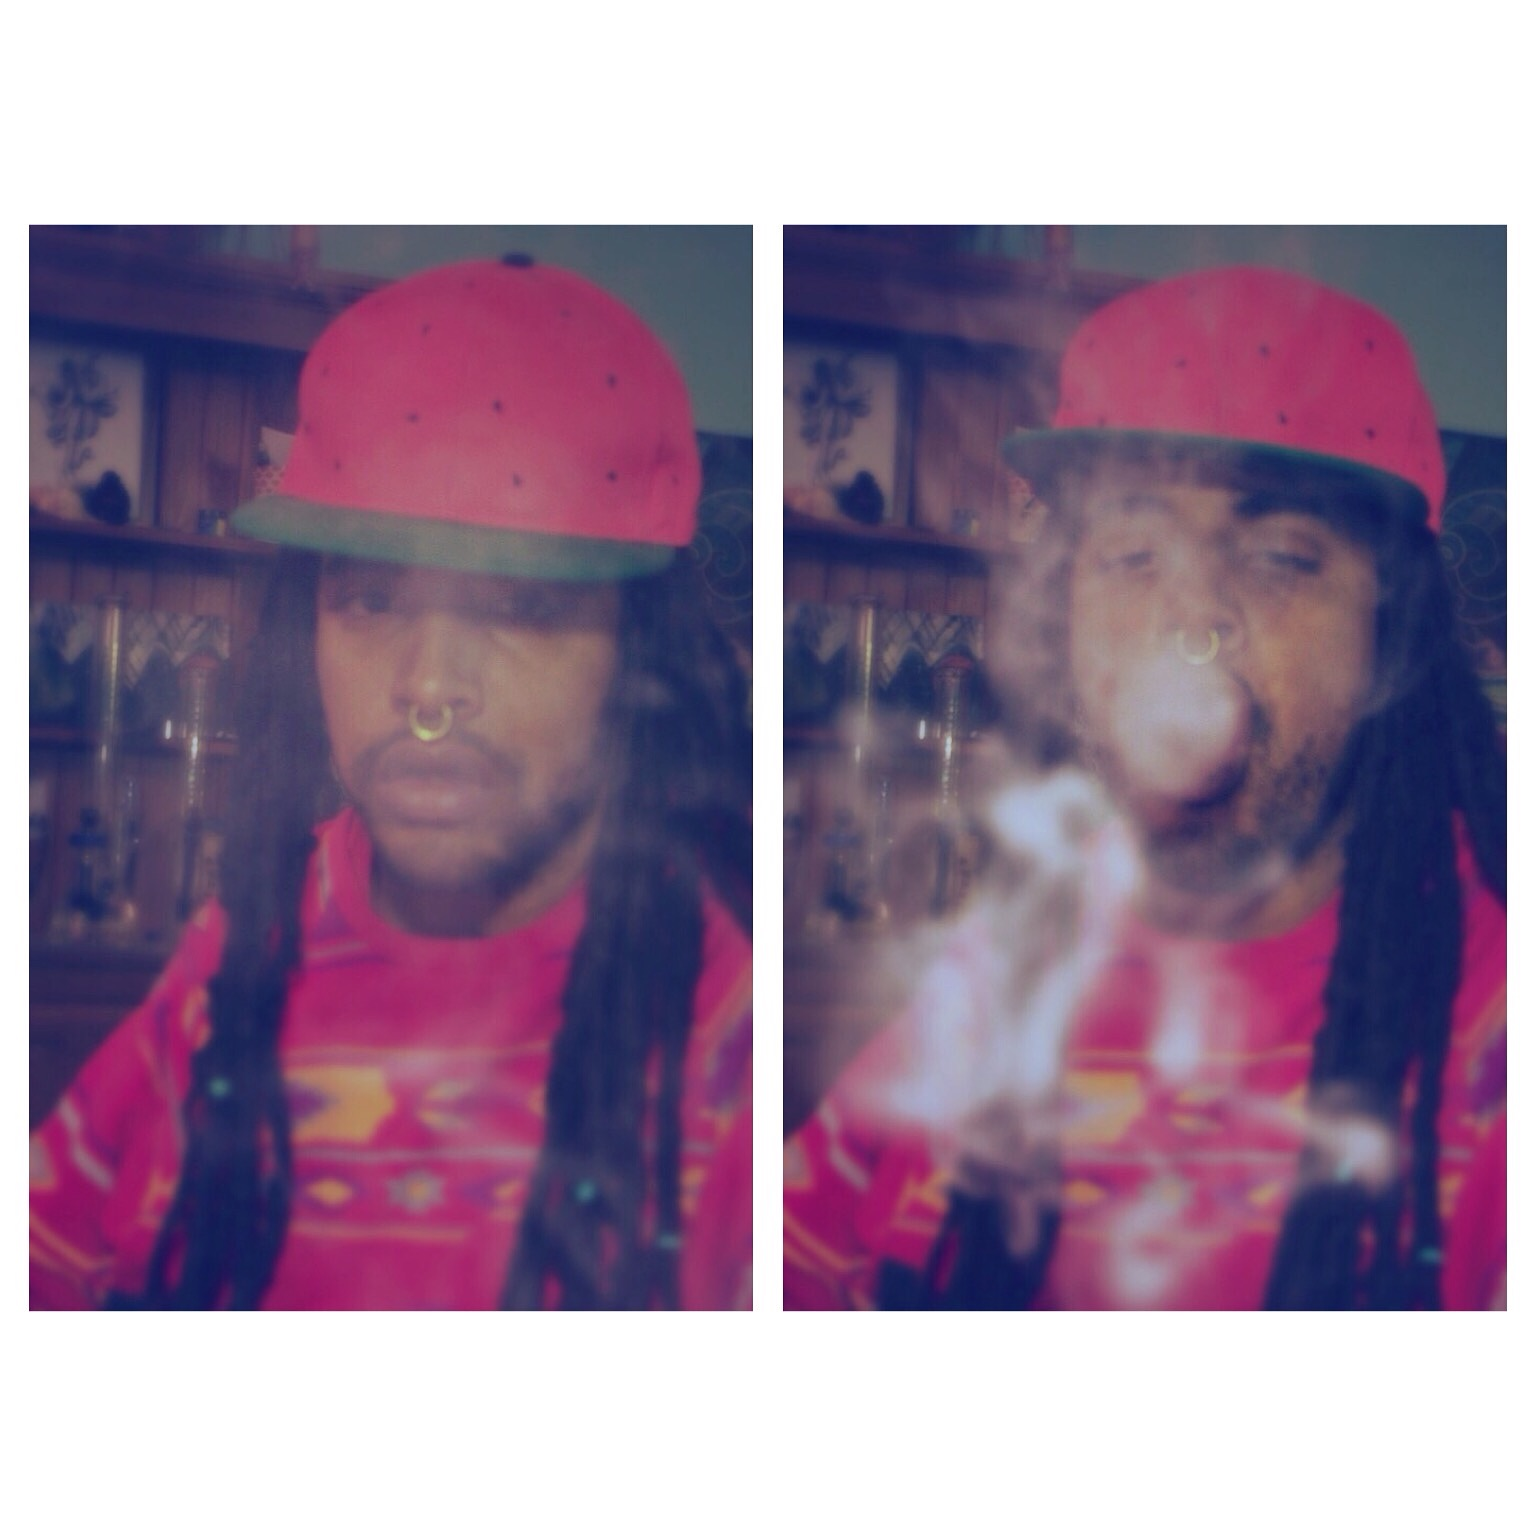 Loud in the red zone